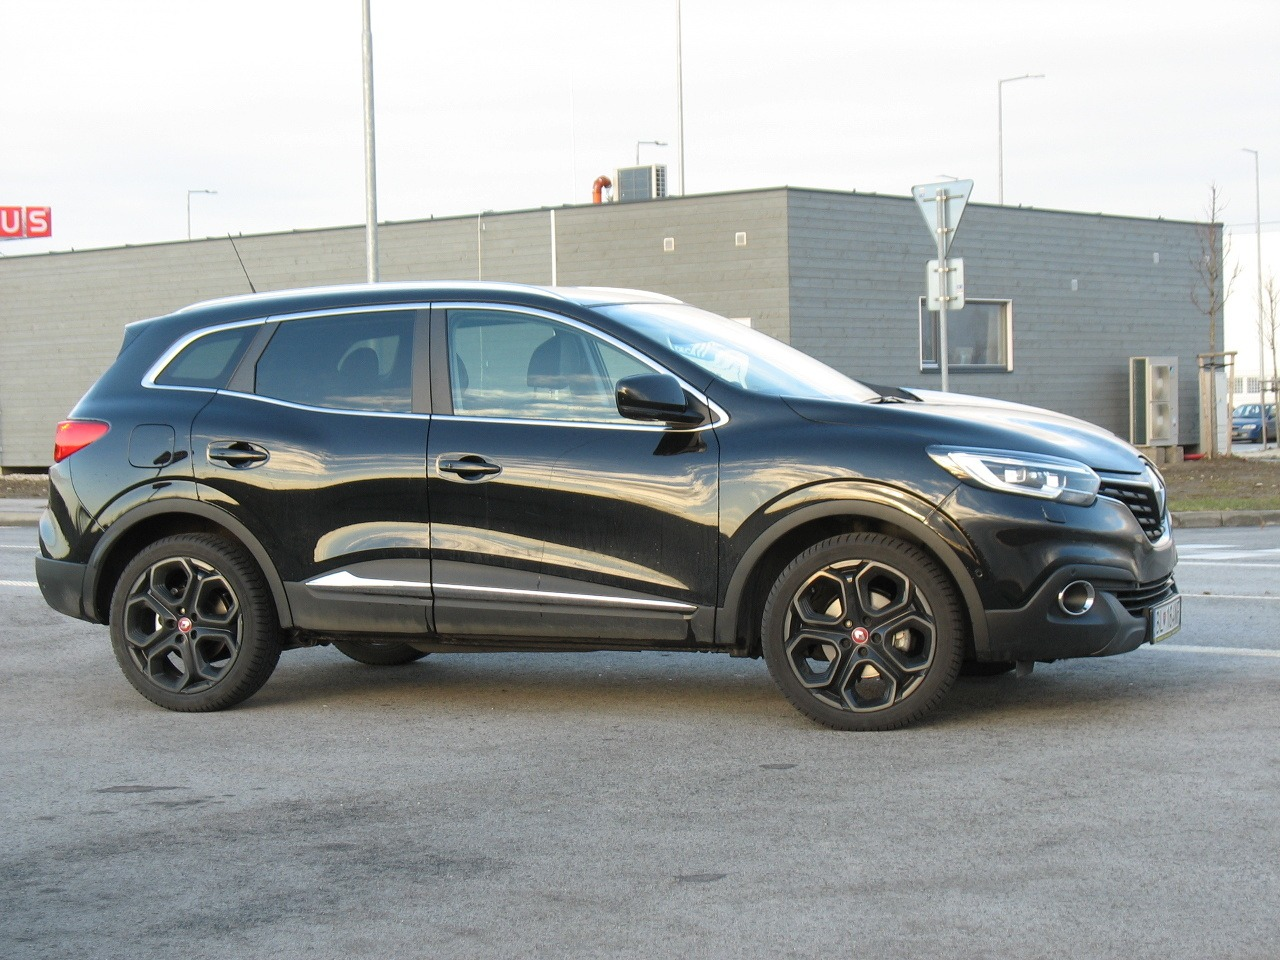 test renault kadjar 1 2 tce 130 edc night day ierne na bielom foto gal ria. Black Bedroom Furniture Sets. Home Design Ideas